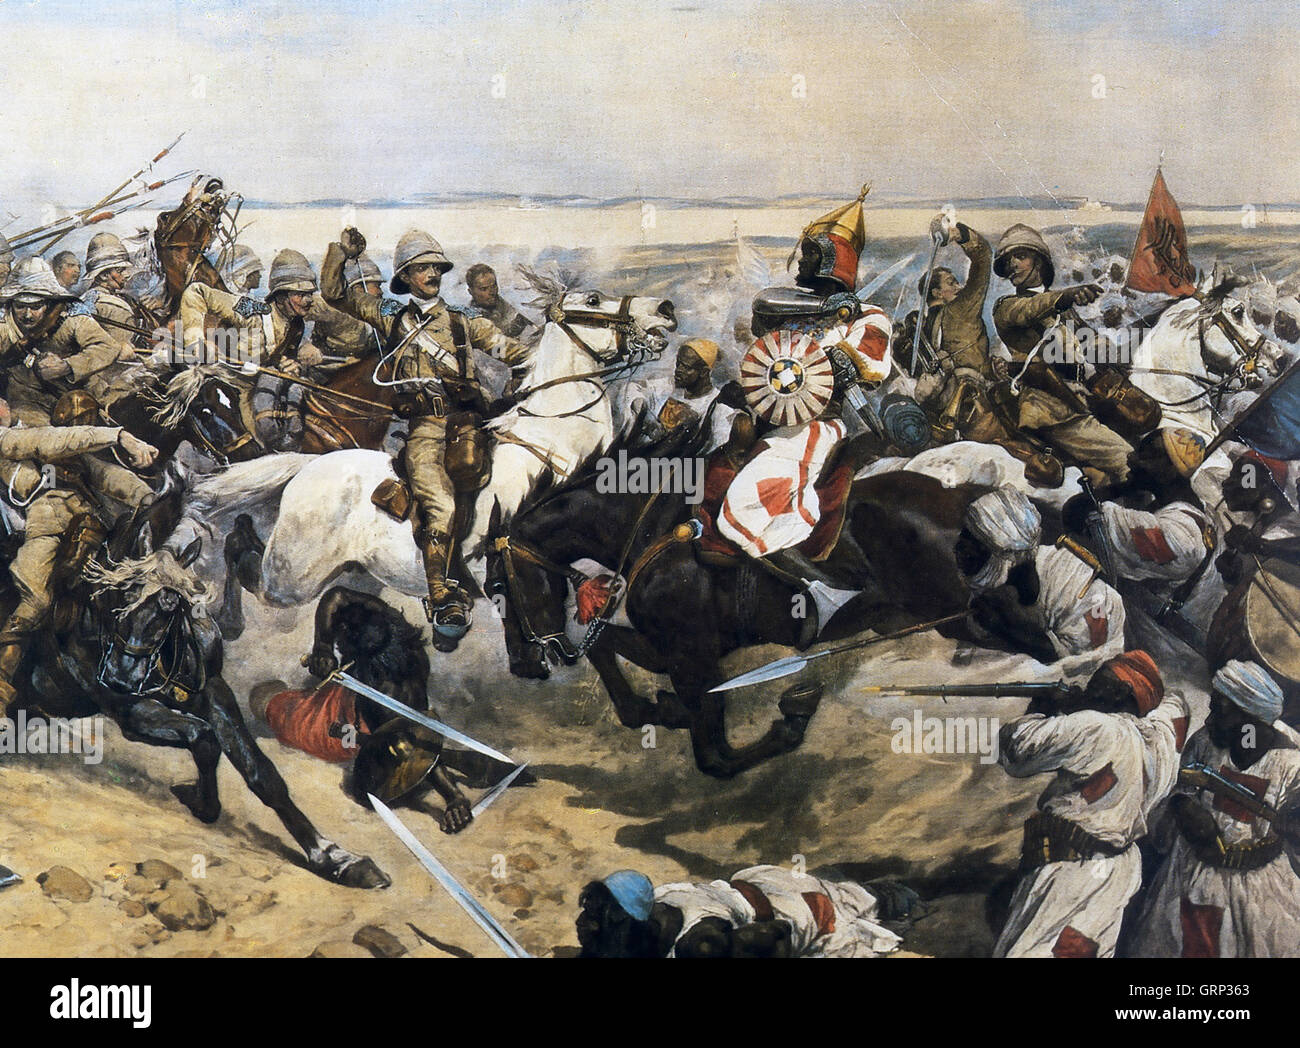 BATTLE OF OMDURMAN 2 September 1898. The charge of the 21 Lancers - in which Winston Churchill took part - painted - Stock Image